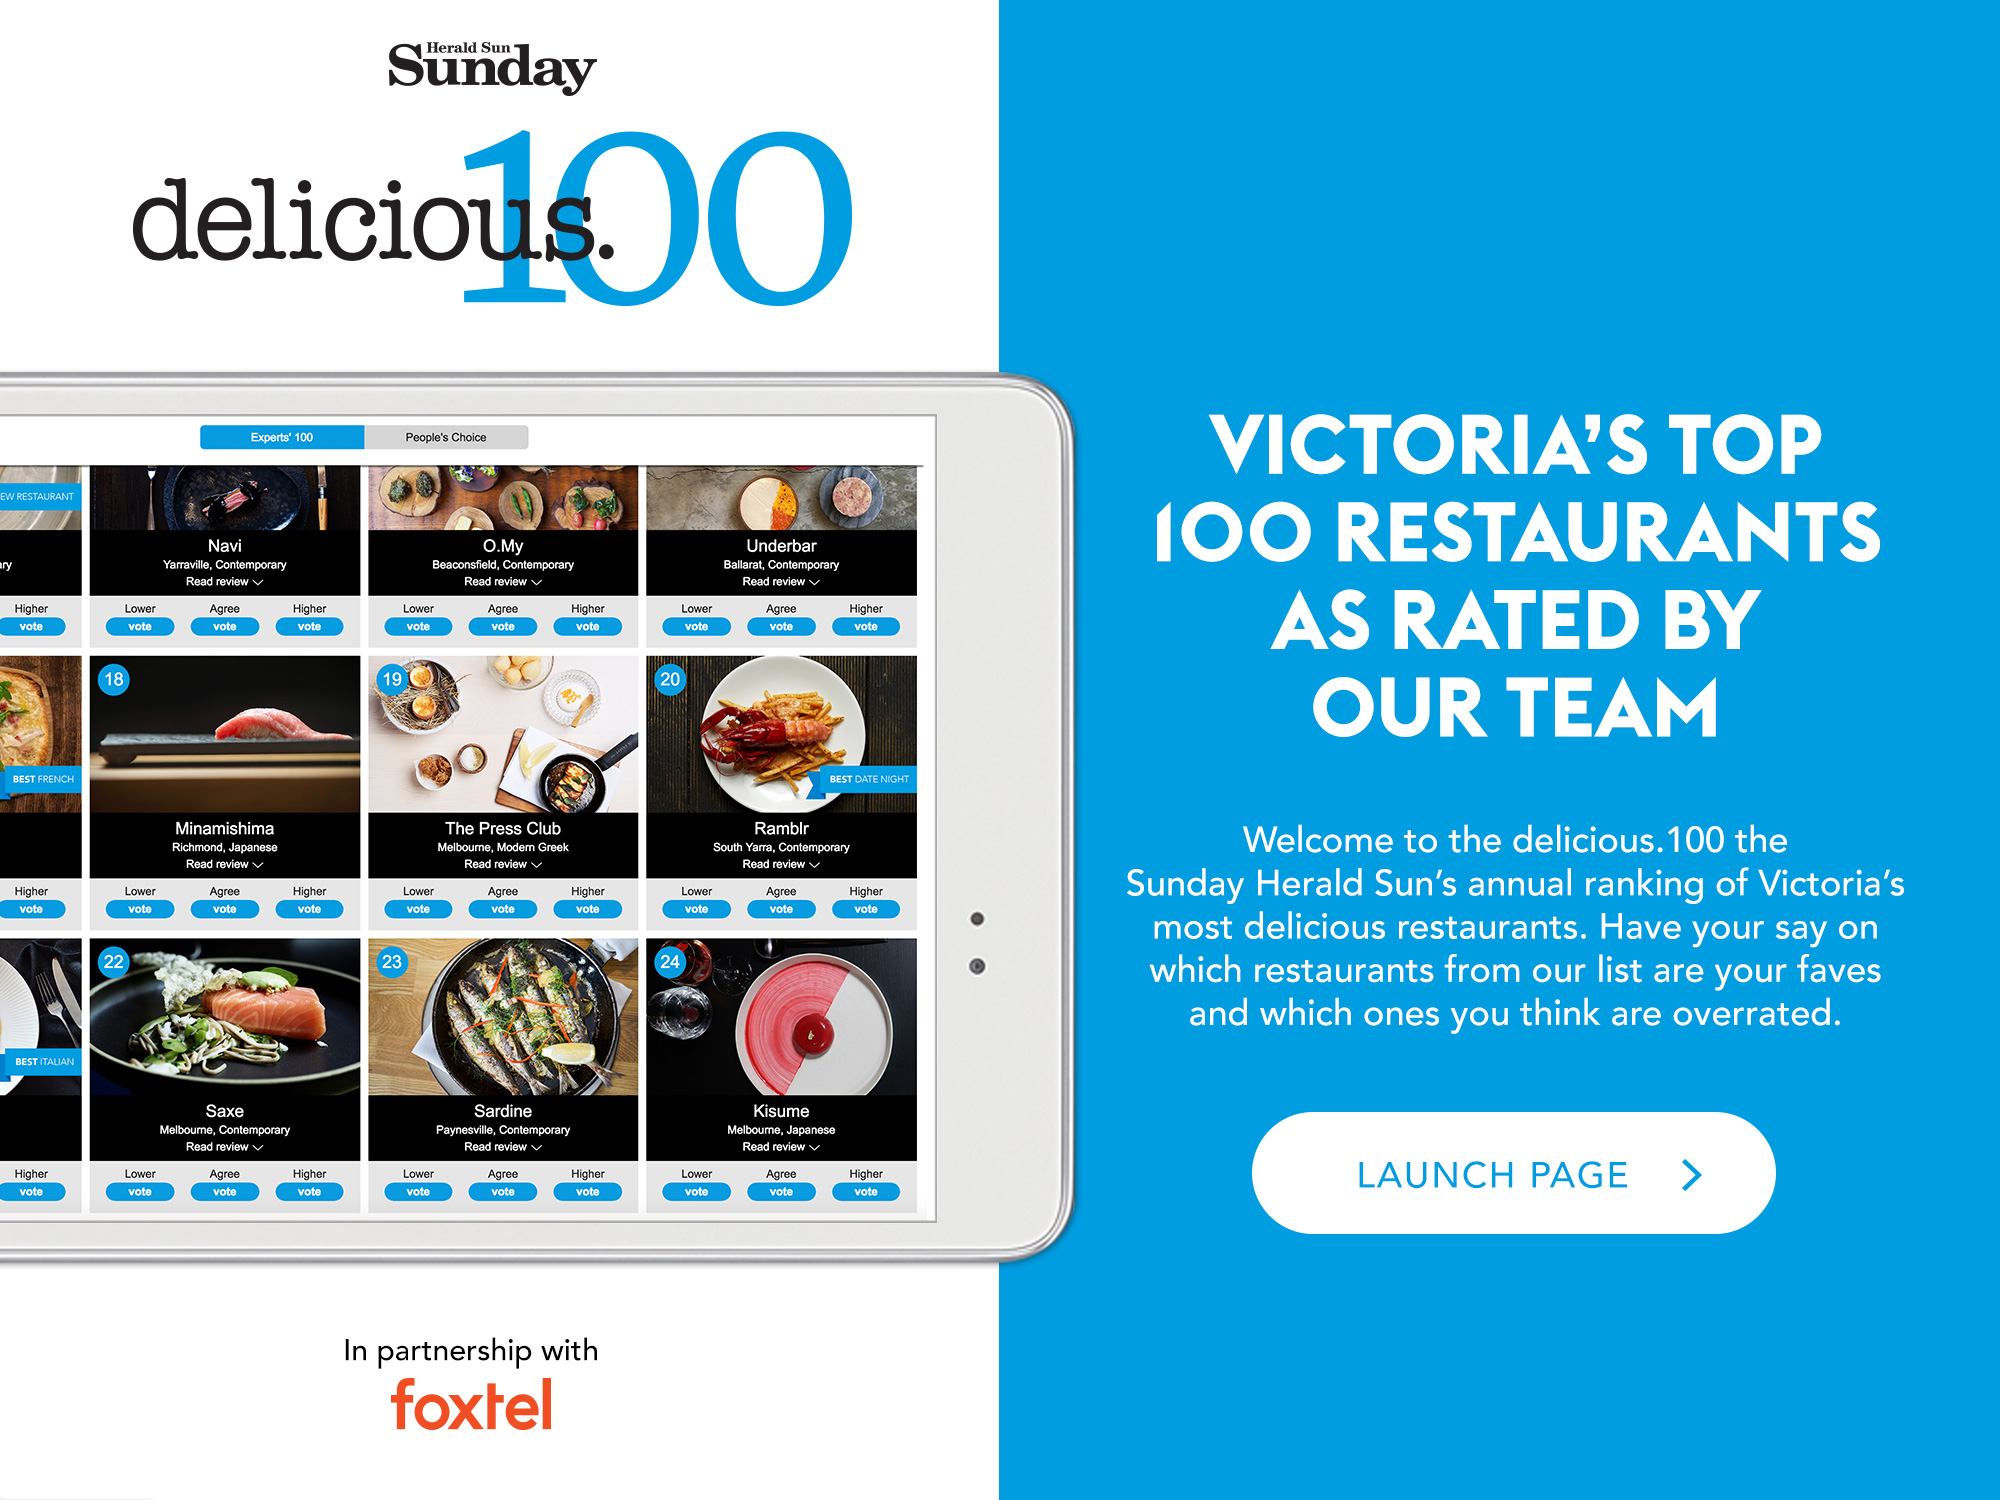 63e434177b3 THE LATEST MELBOURNE FOOD NEWS AND REVIEWS